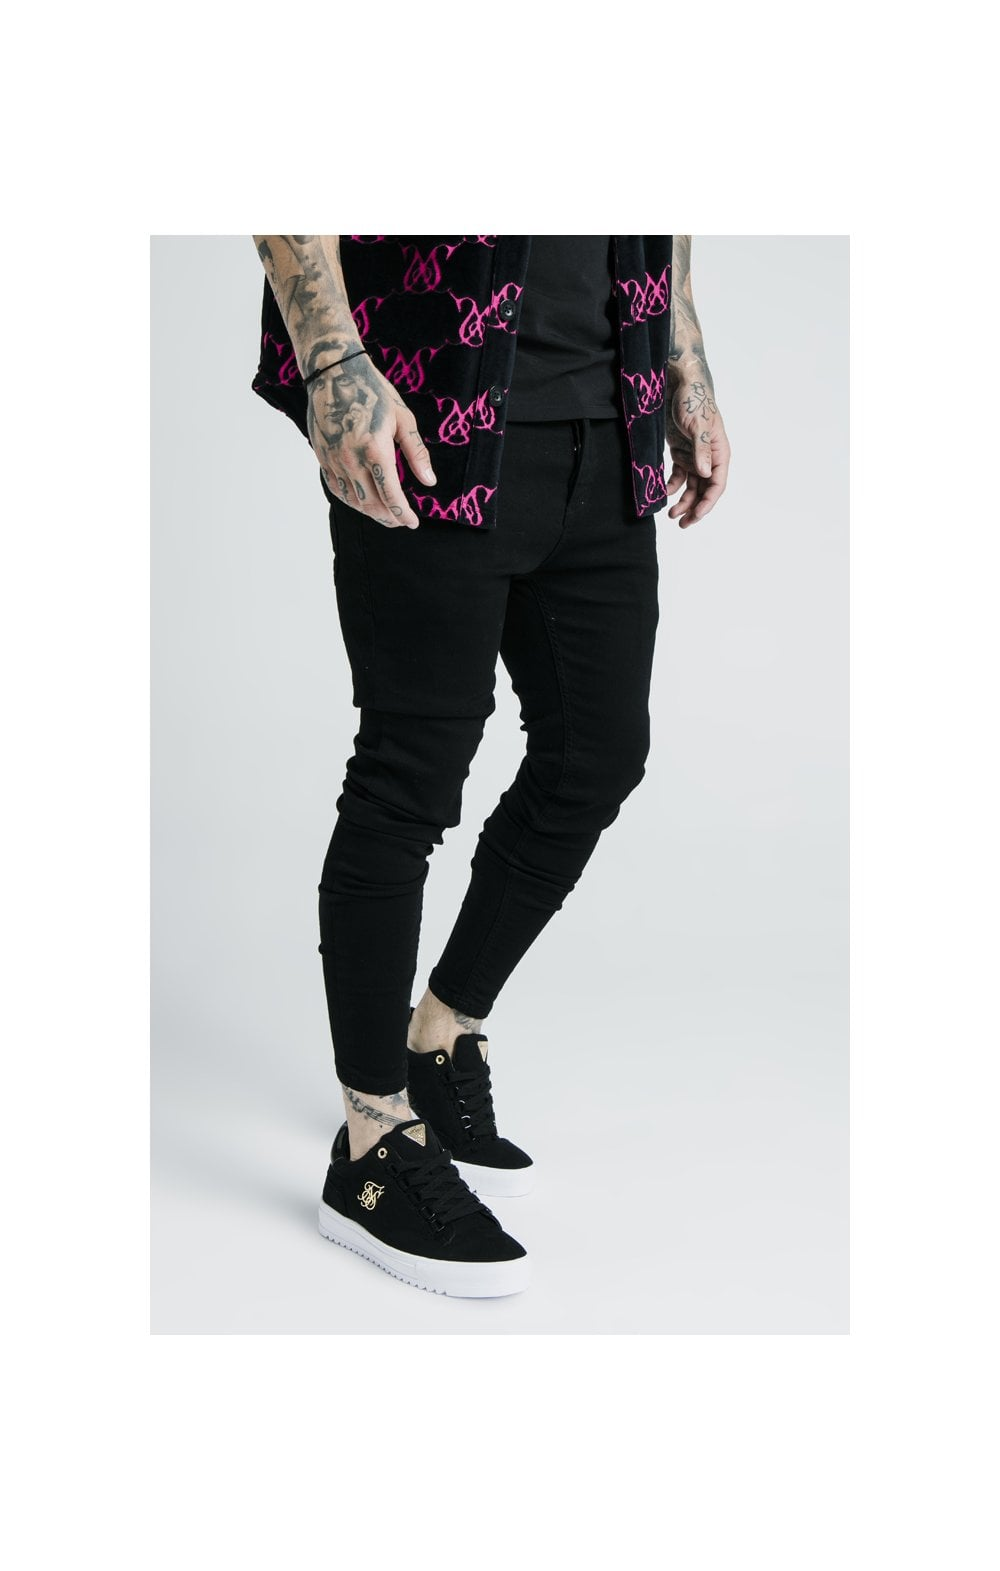 Load image into Gallery viewer, SikSilk x Dani Alves Low Rise Prestige Denims - Black (4)